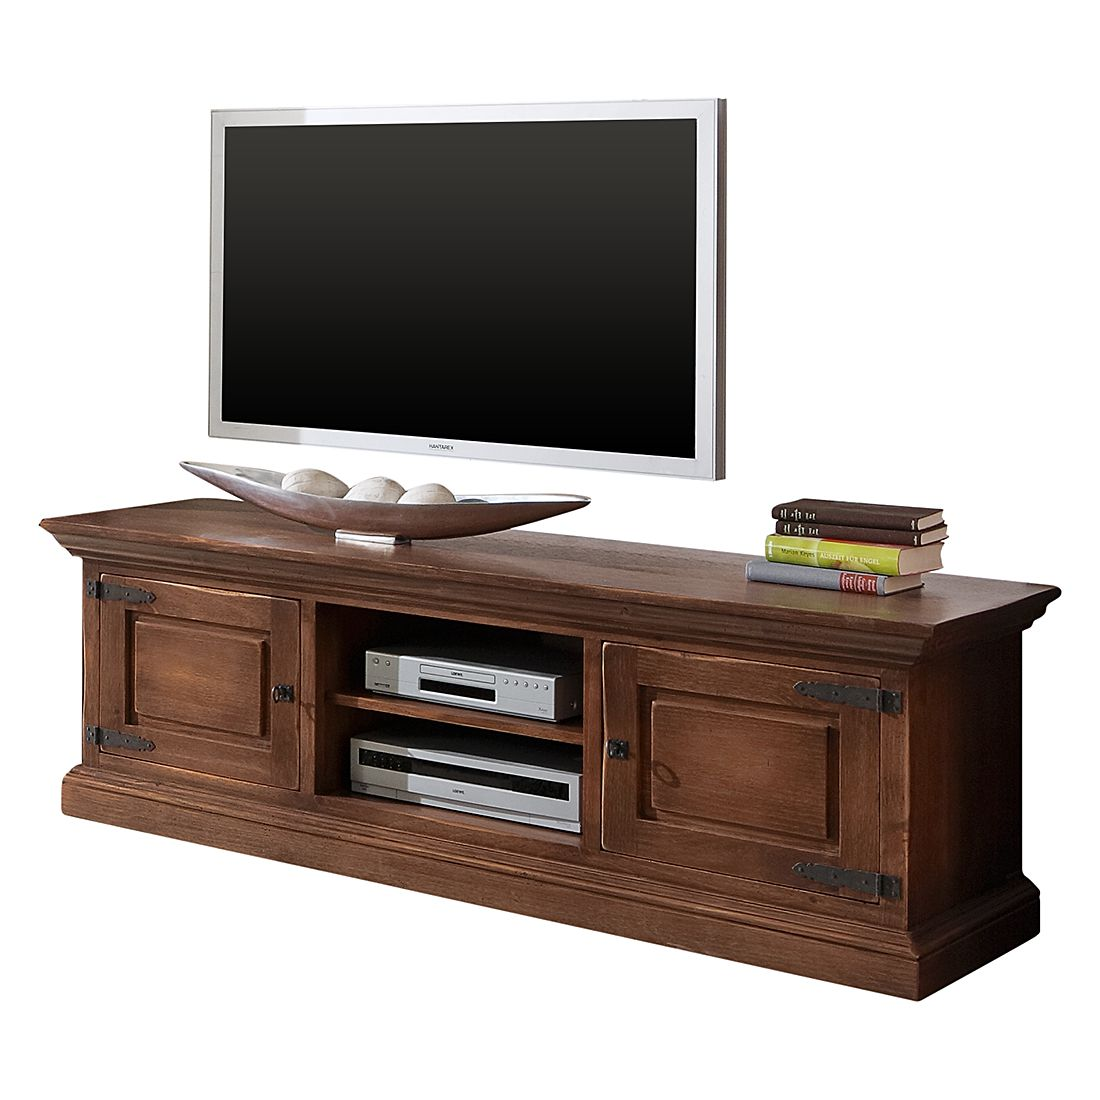 Meuble TV Vicuna - Pin massif - Marron - 164 cm, Landhaus Classic